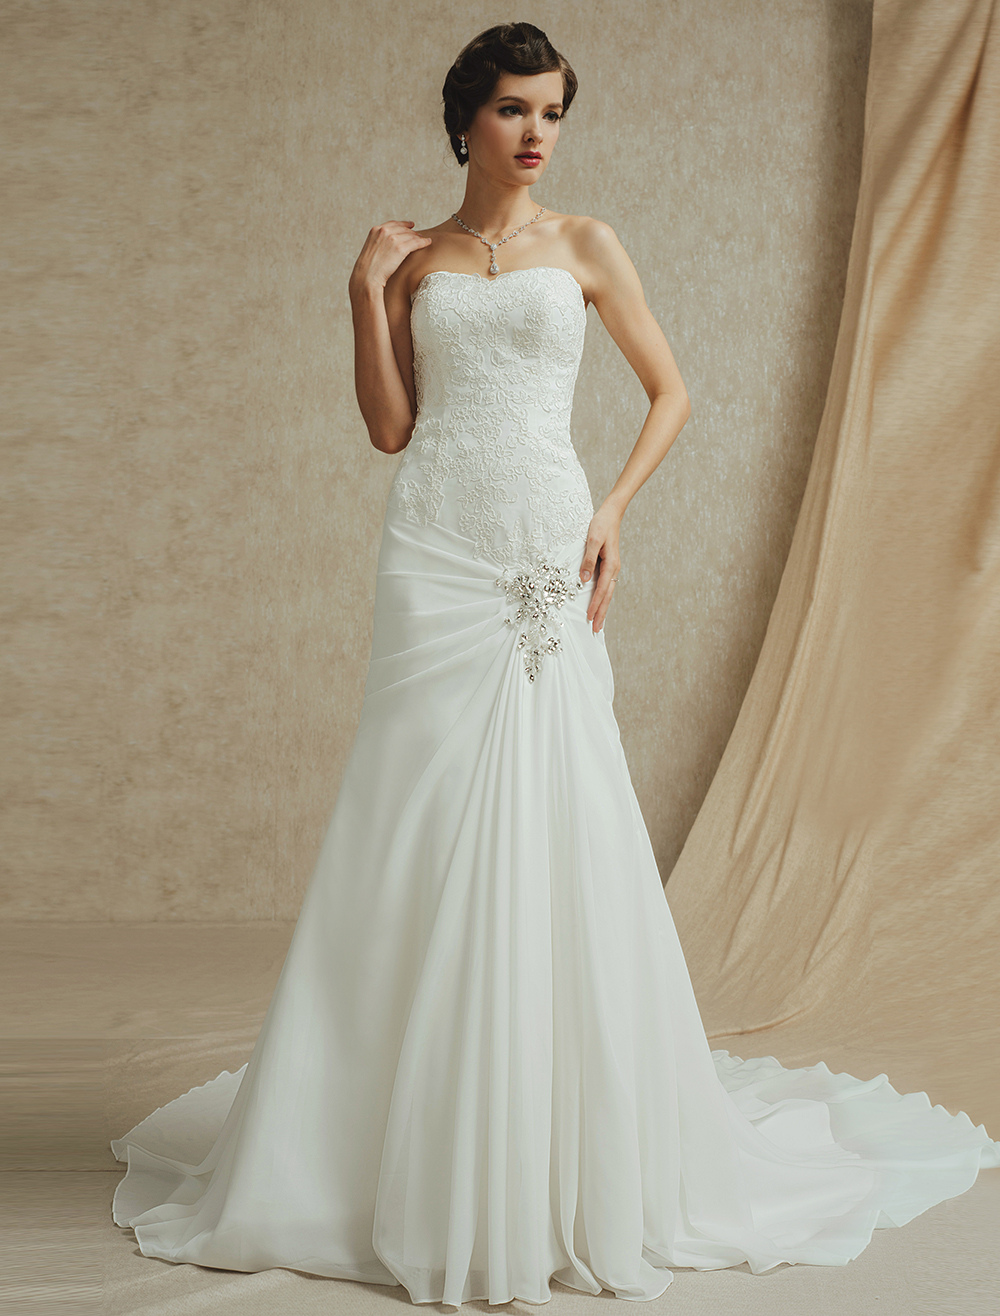 Court Train Strapless Wedding Gown with Lace